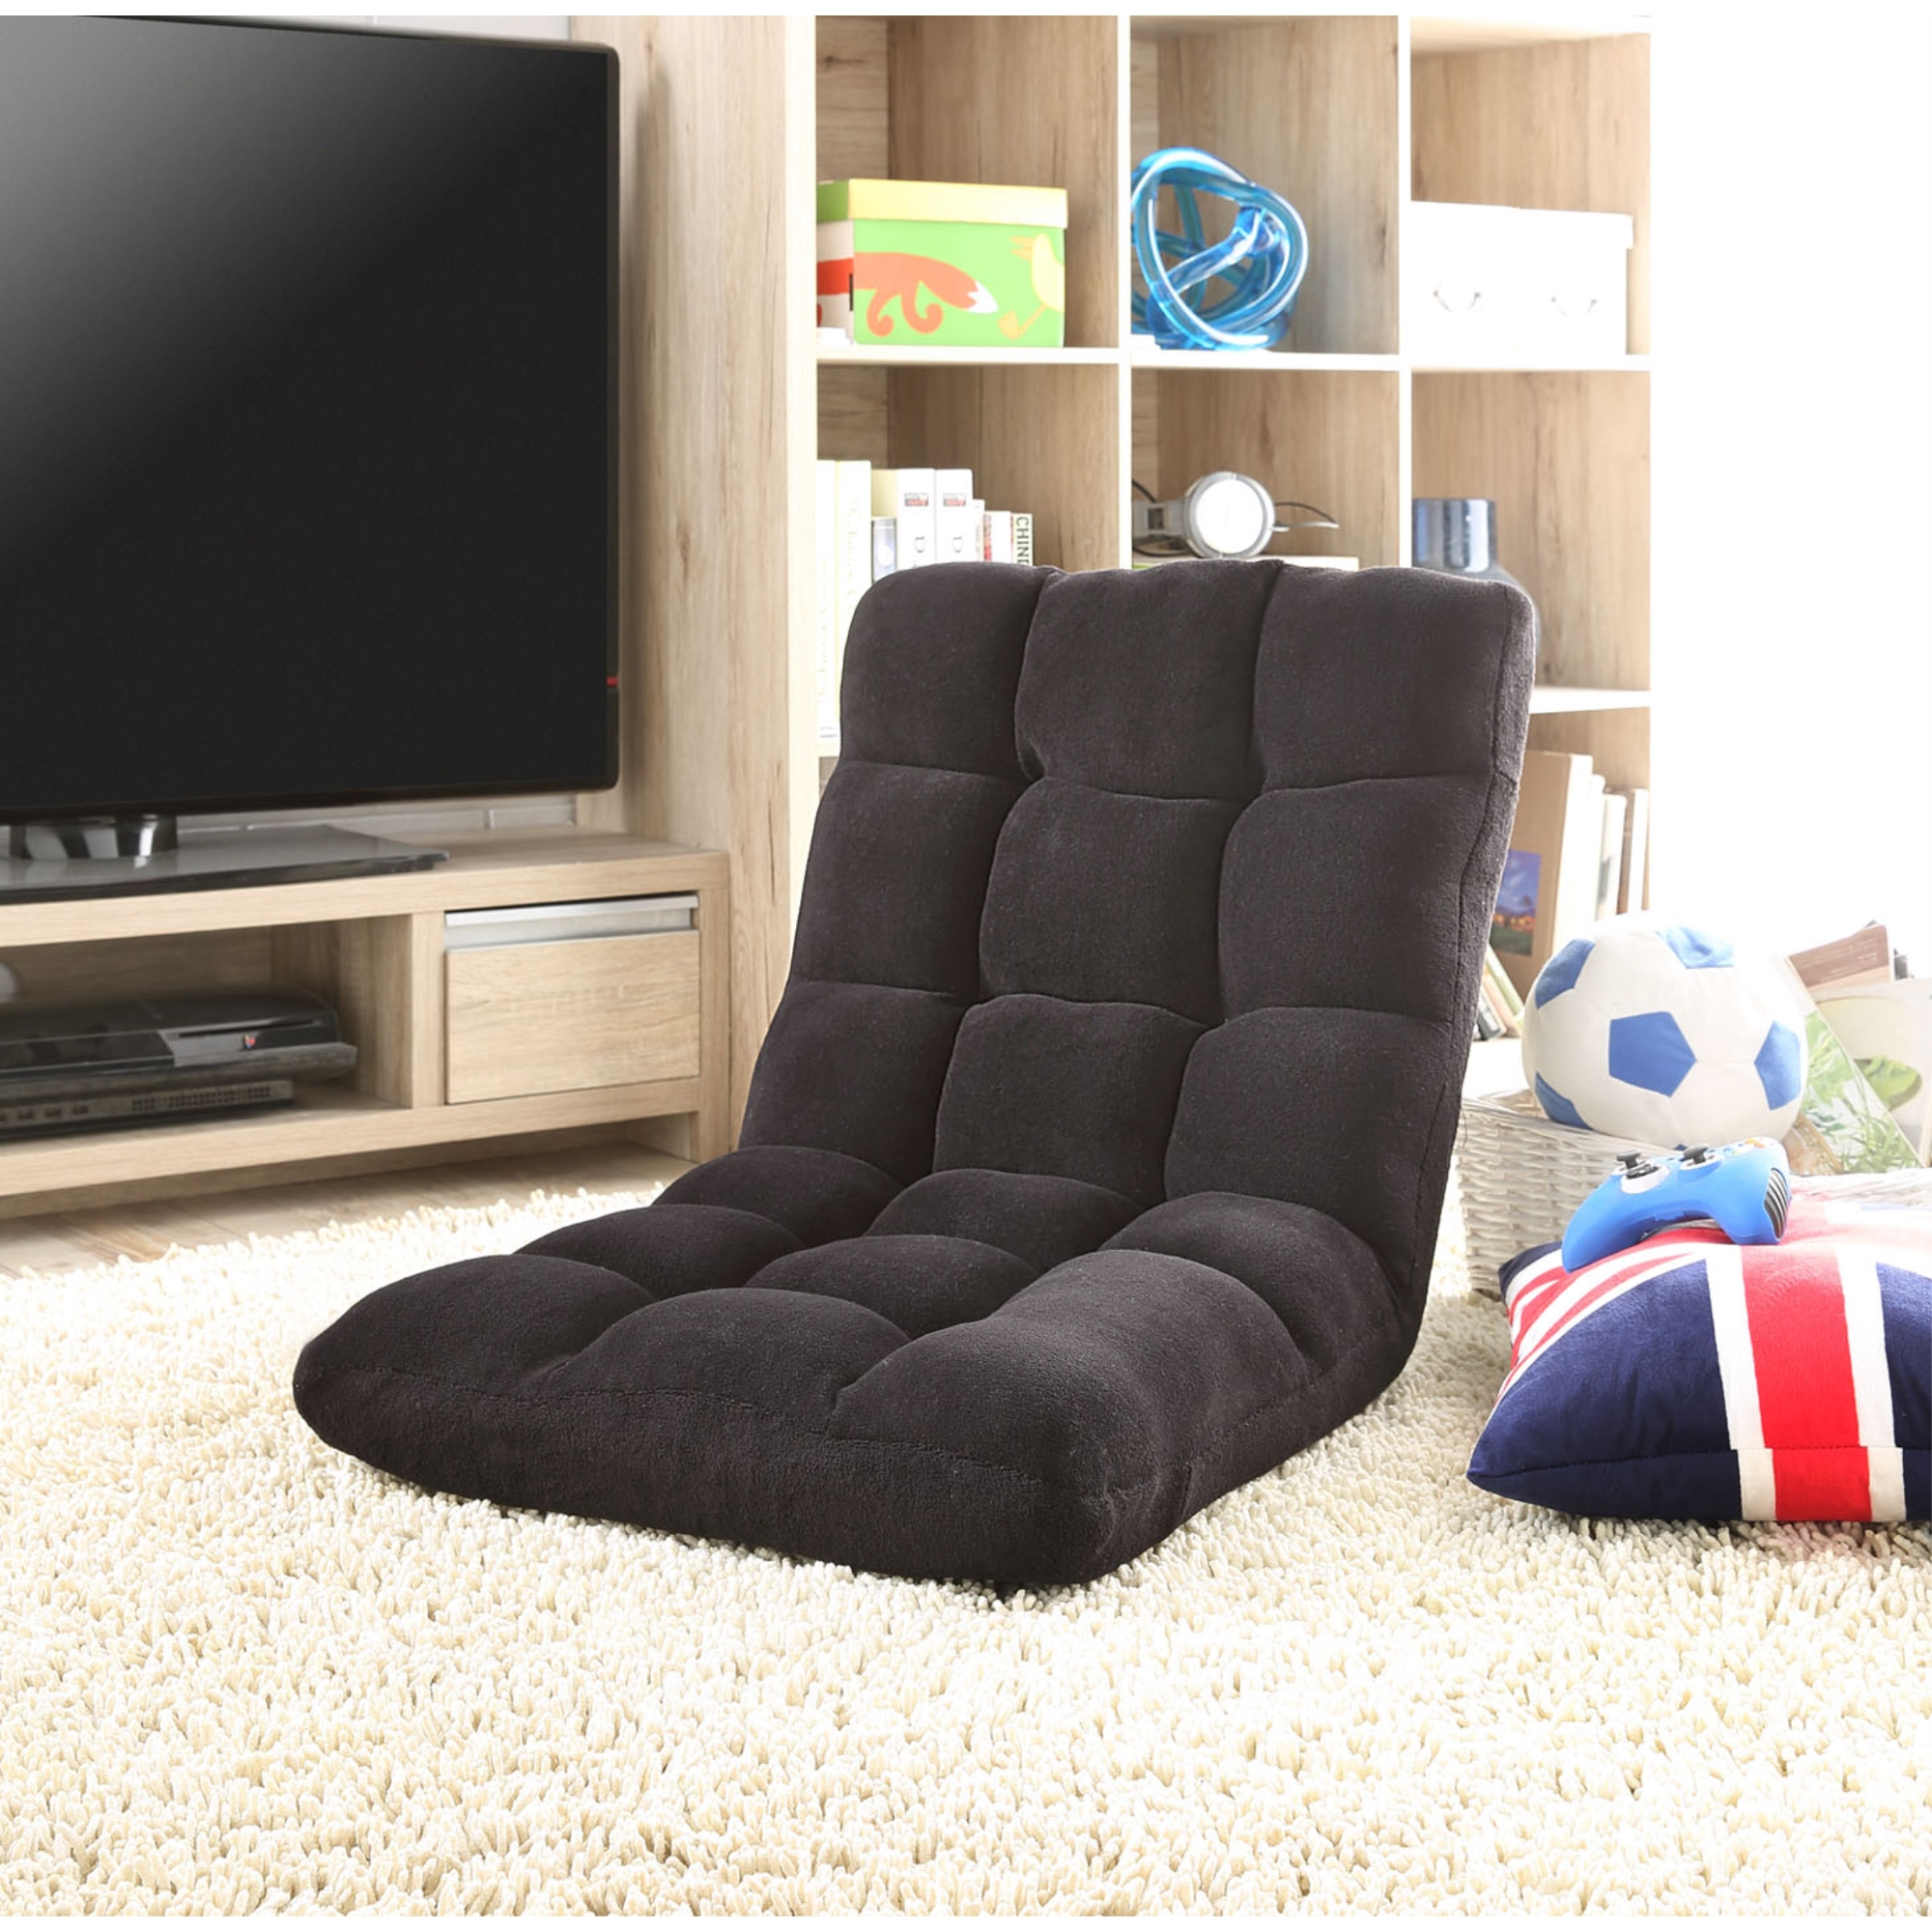 Loungie Microplush Modern Convertible Chair